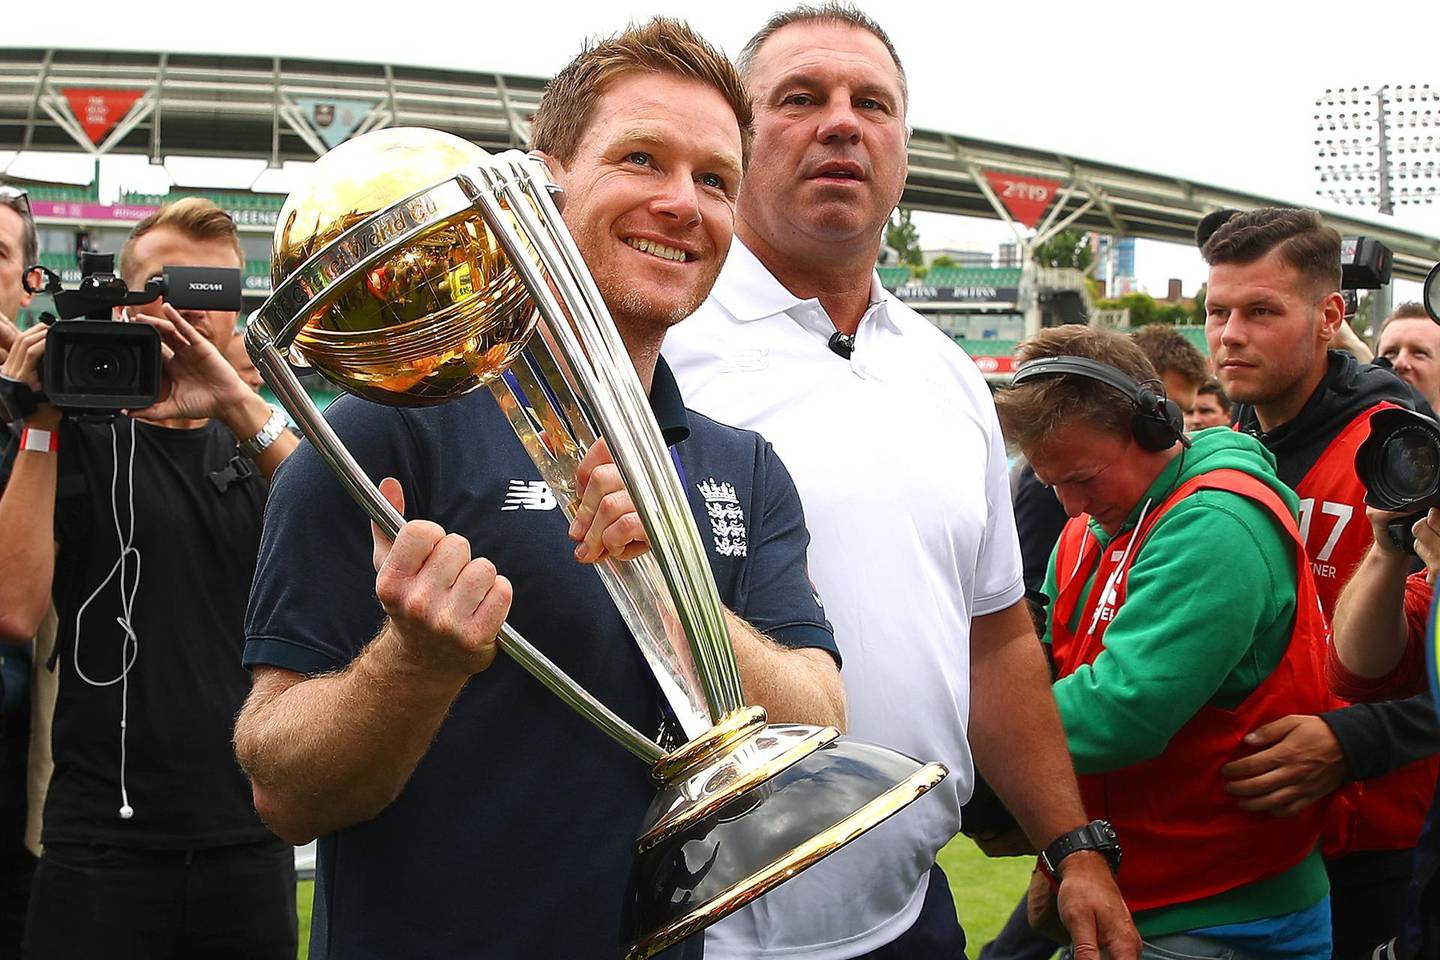 LONDON, ENGLAND - JULY 15: Eoin Morgan of England shows the ICC Cricket World Cup Trophy to the fans during the England ICC World Cup Victory Celebration at The Kia Oval on July 15, 2019 in London, England. (Photo by James Chance/Getty Images)